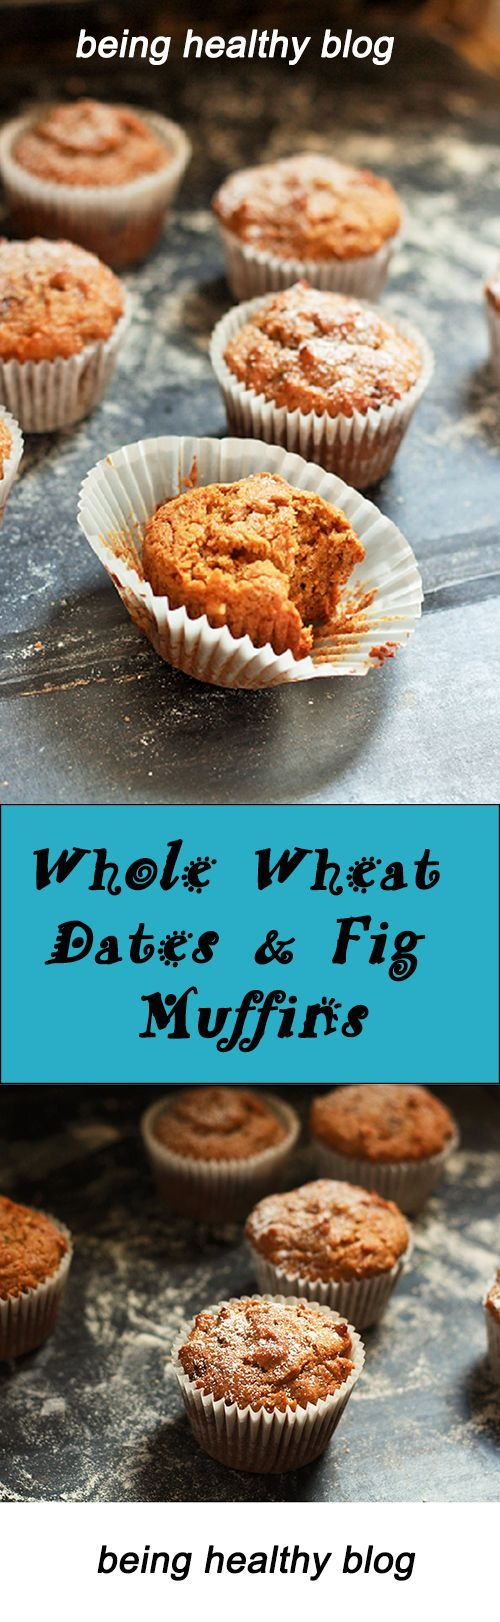 Whole Wheat Dates & Figs Muffins recipe. A delicious whole – wheat flour muffins and not to forget the dried fruits and nuts that would make a perfect Breakfast on the go